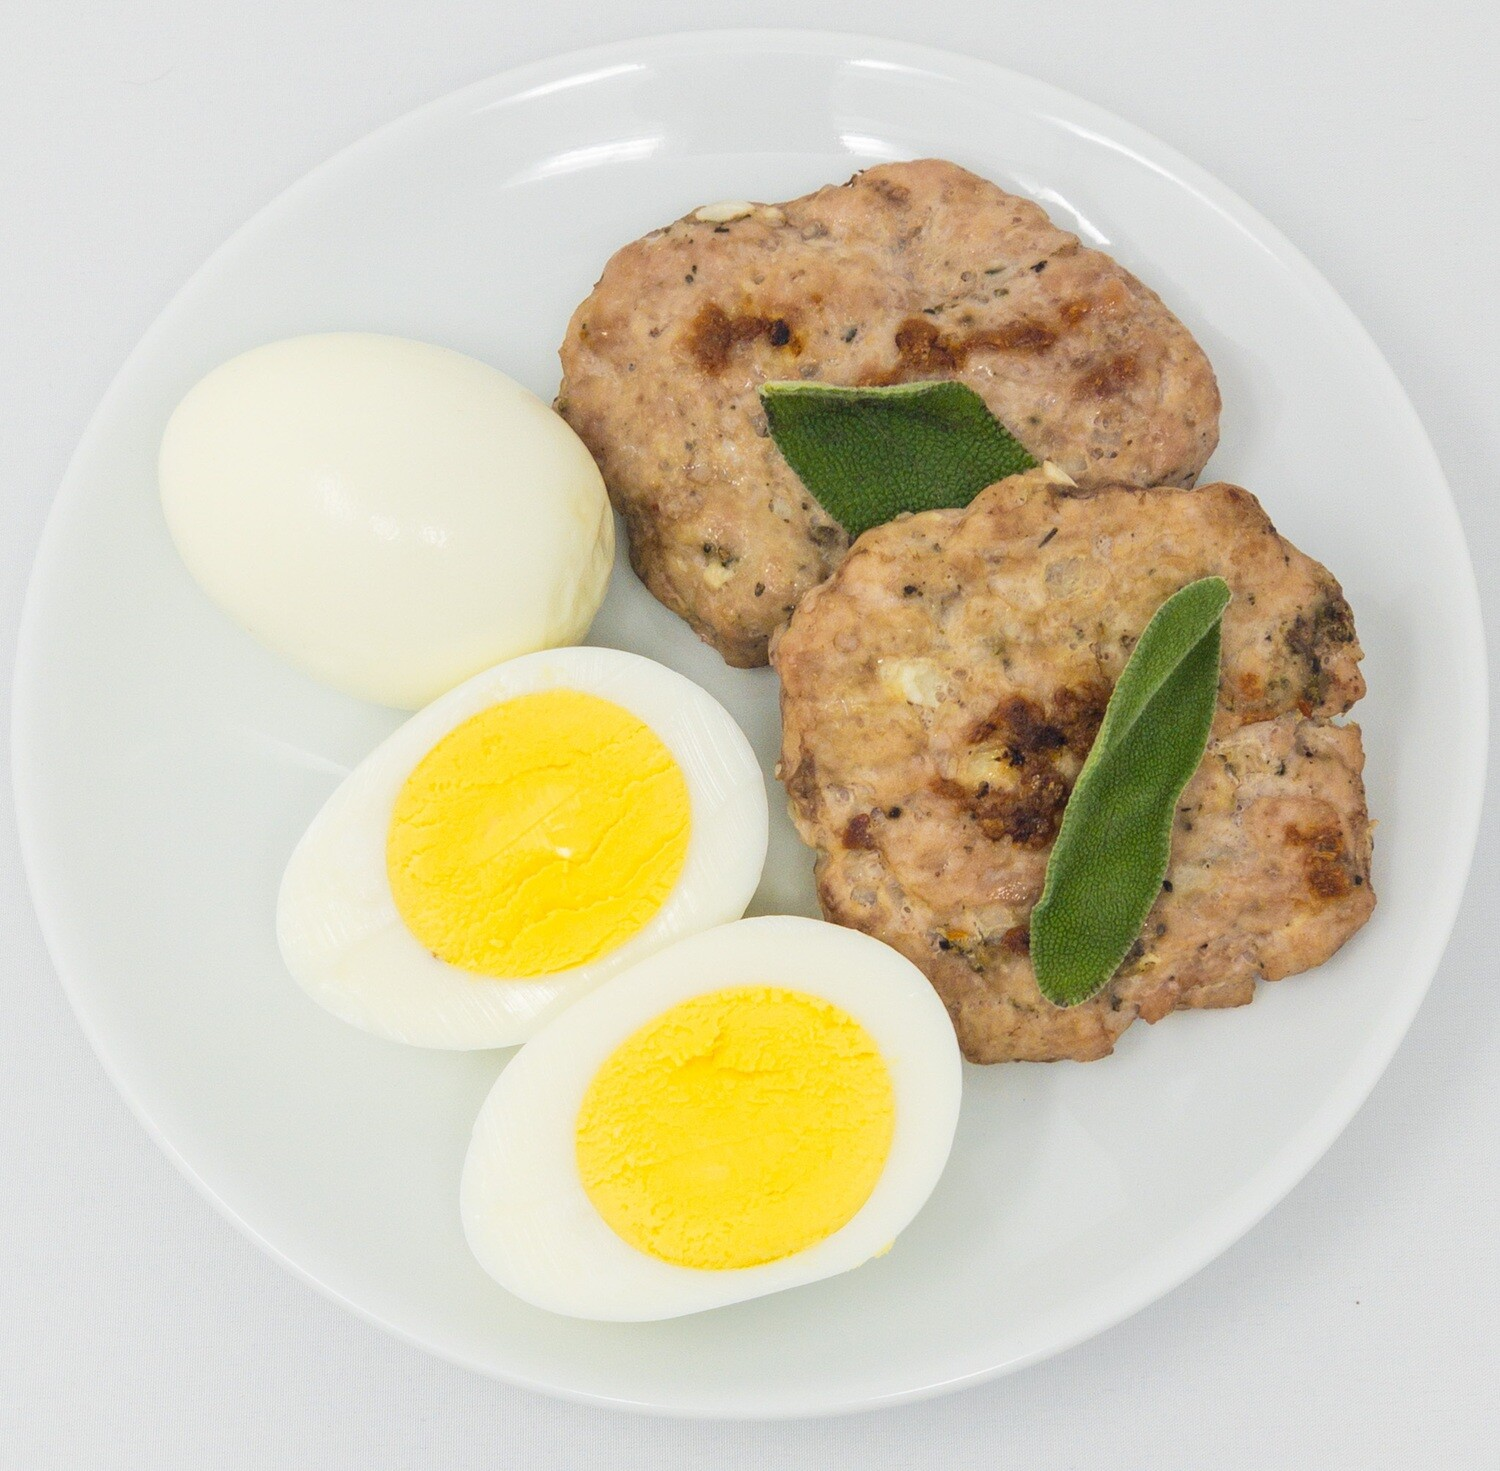 Snack on the go- Roasted Garlic and Sage Sausage Patties and Hard Boiled Eggs